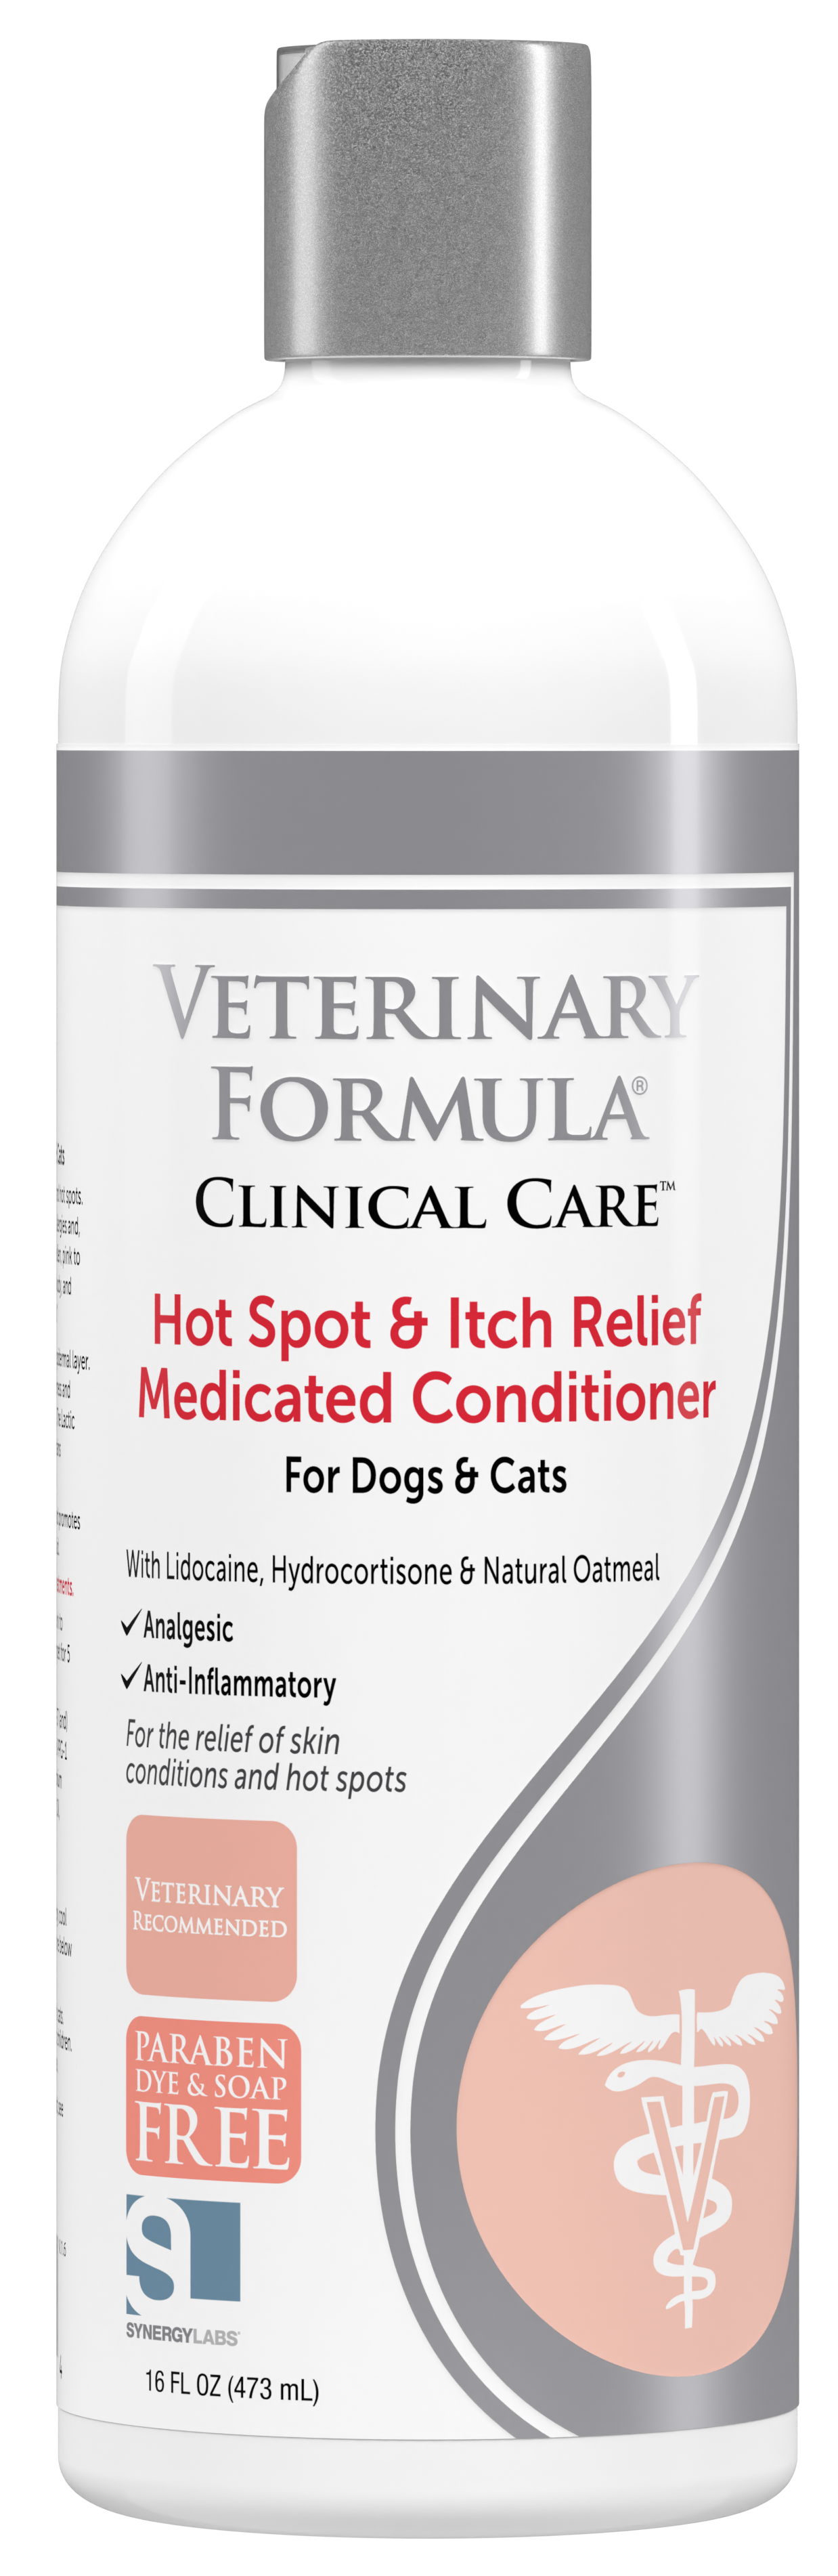 Hot Spot & Itch Relief Medicated Conditioner